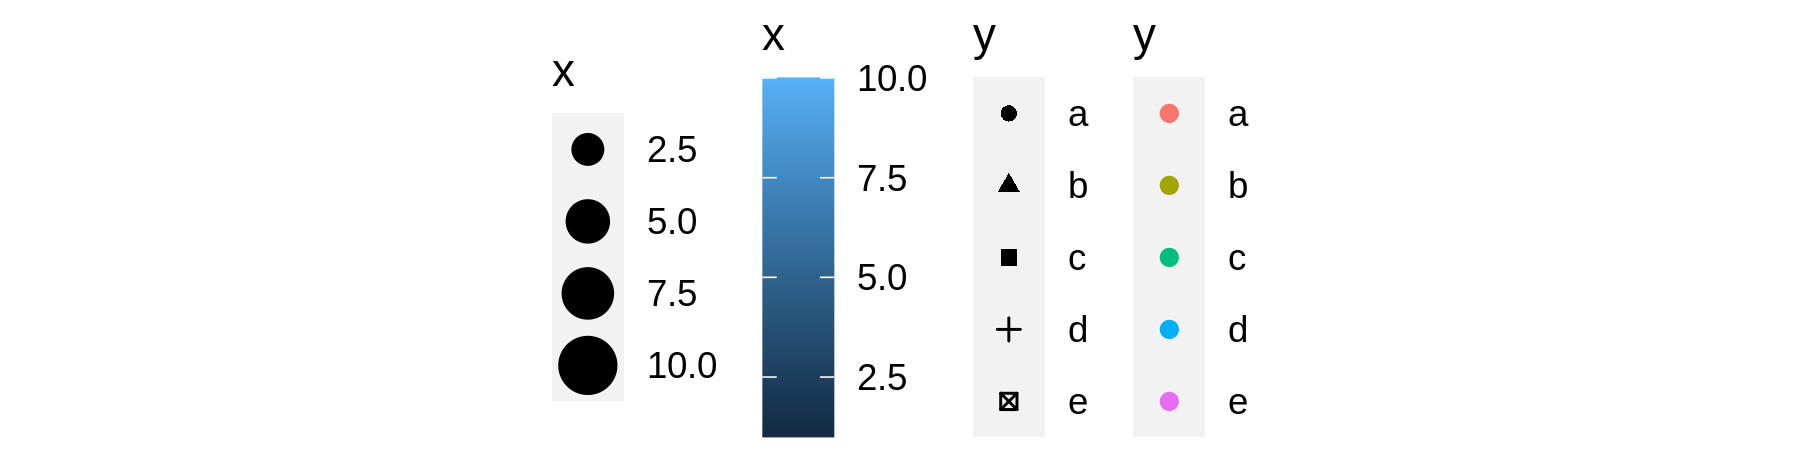 Examples of legends from four different scales. From left to right: continuous variable mapped to size, and to colour, discrete variable mapped to shape, and to colour. The ordering of scales seems upside-down, but this matches the labelling of the $y$-axis: small values occur at the bottom.